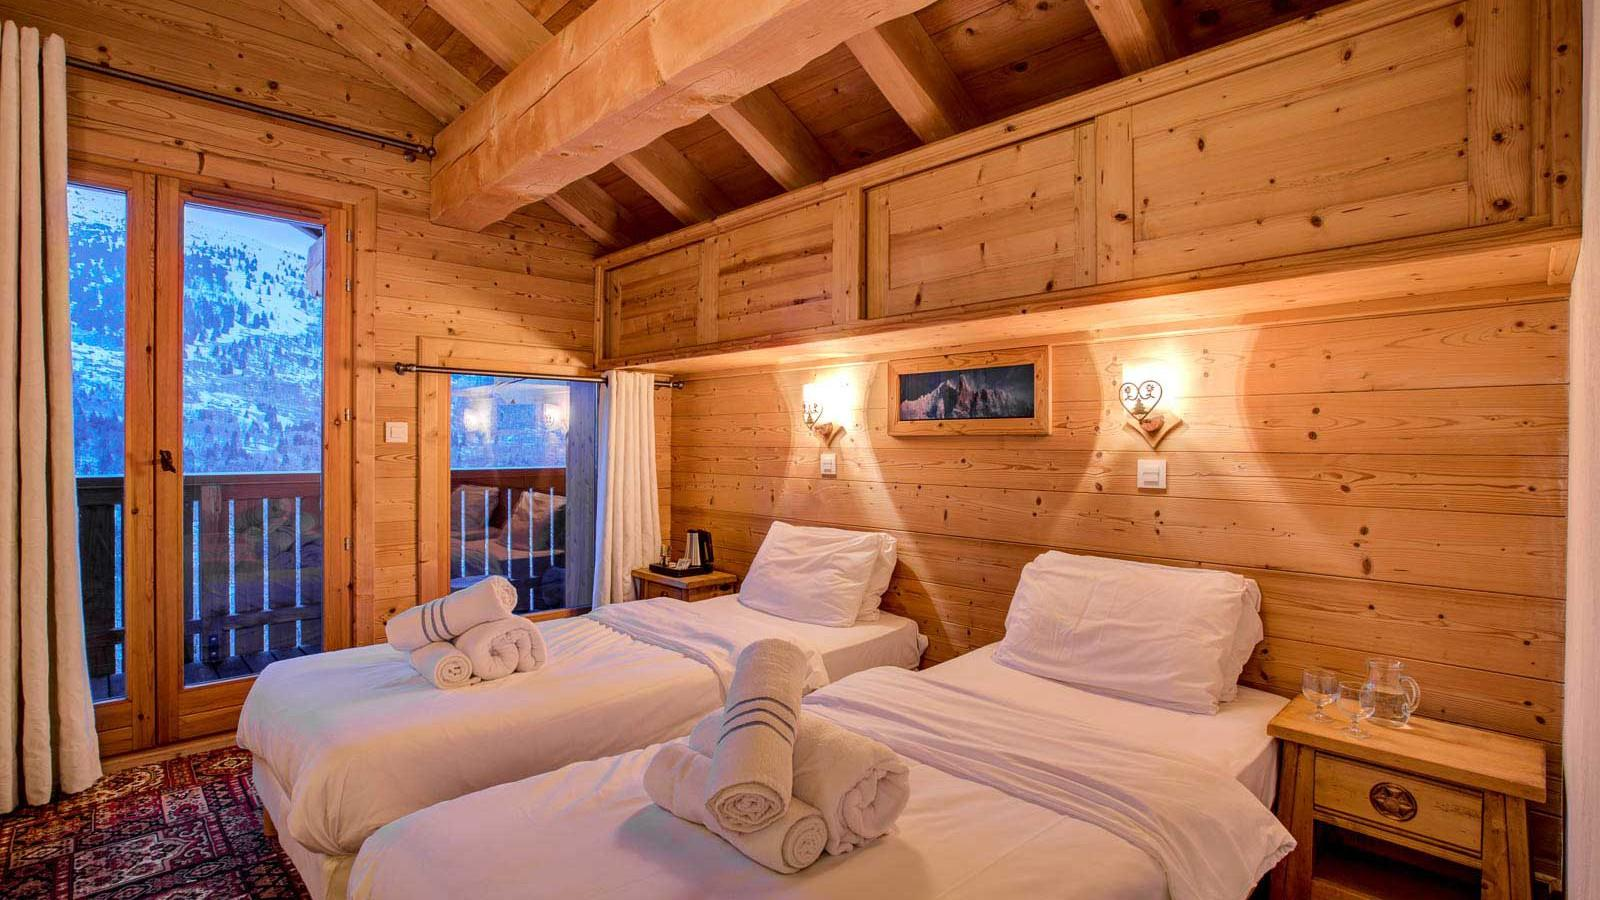 Chalet Laetitia twin bedroom with balcony